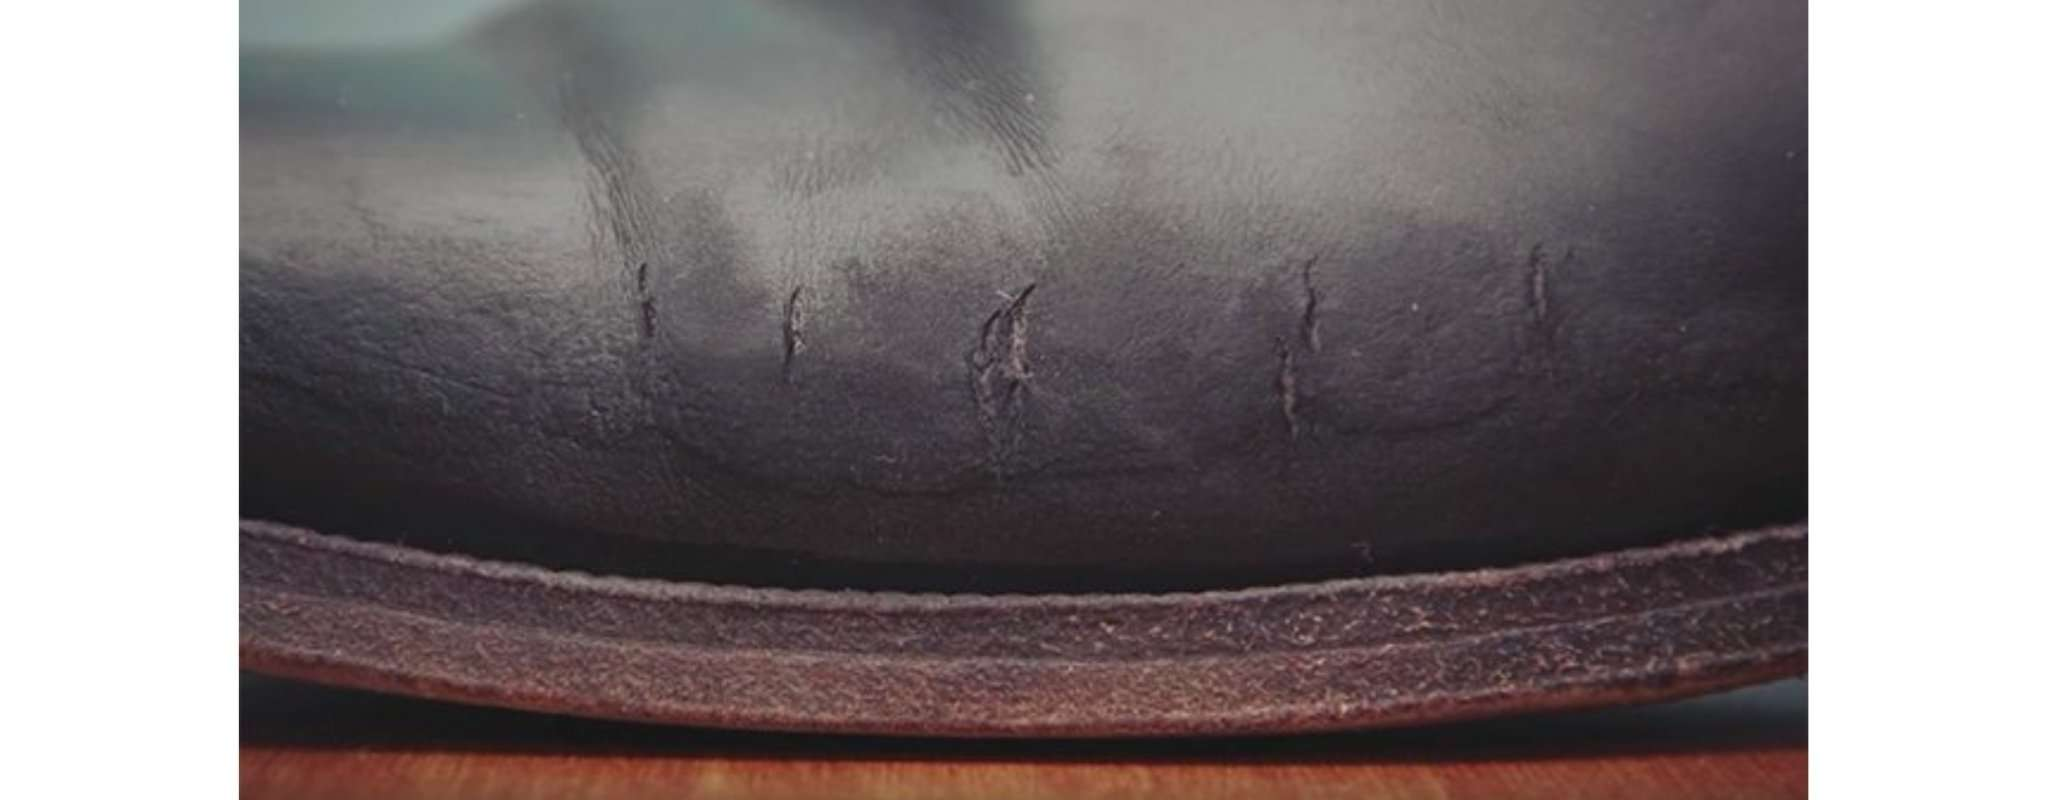 cracks on leather boots